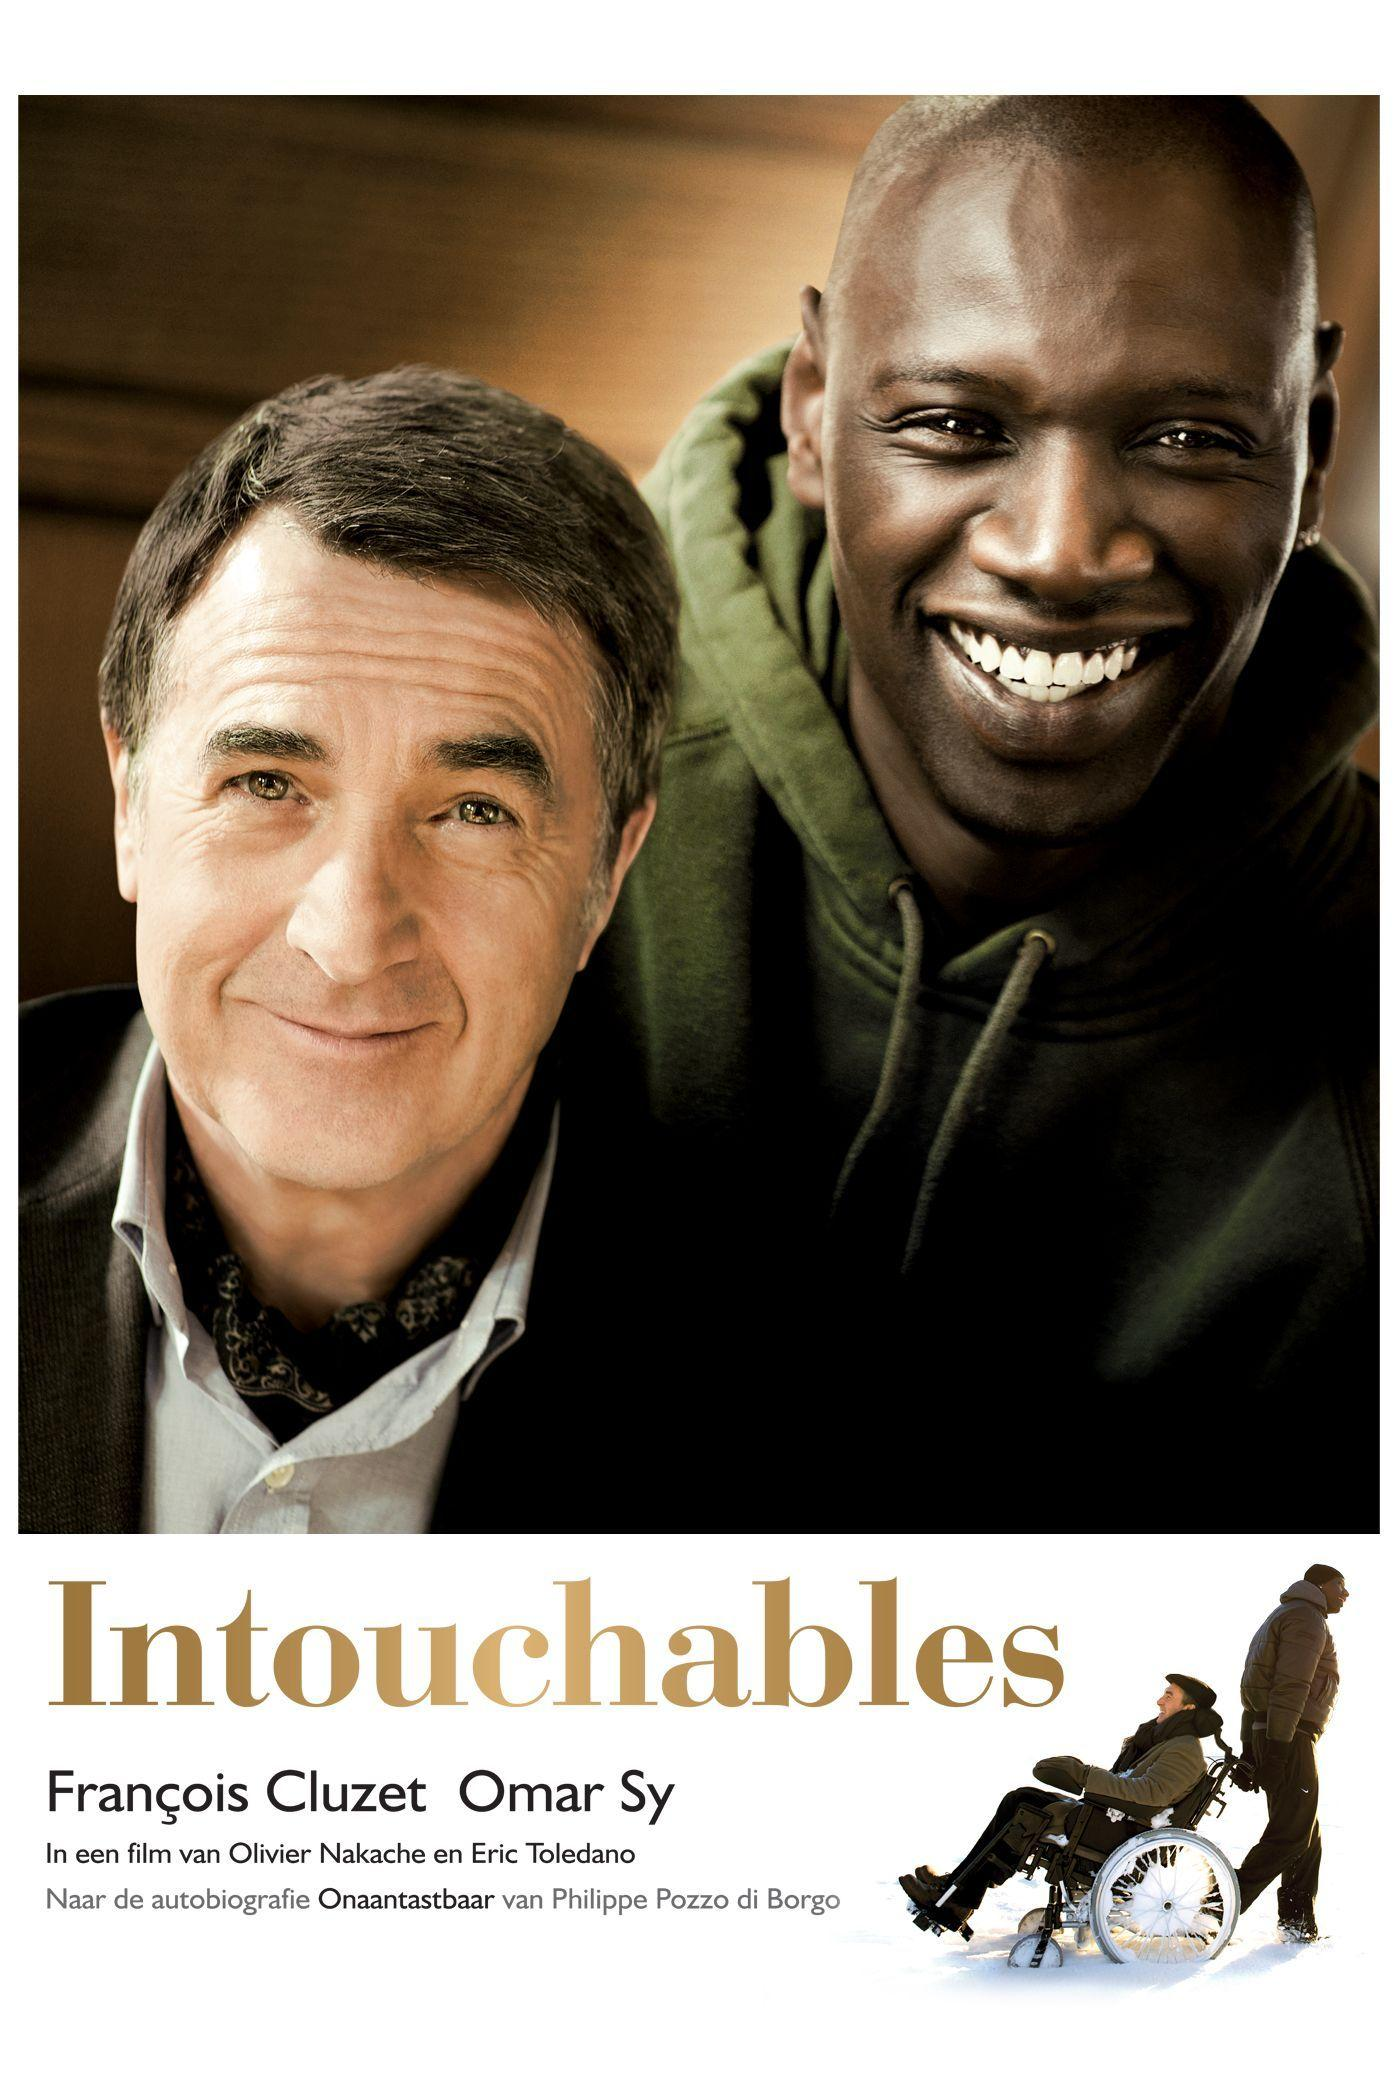 The Intouchables'